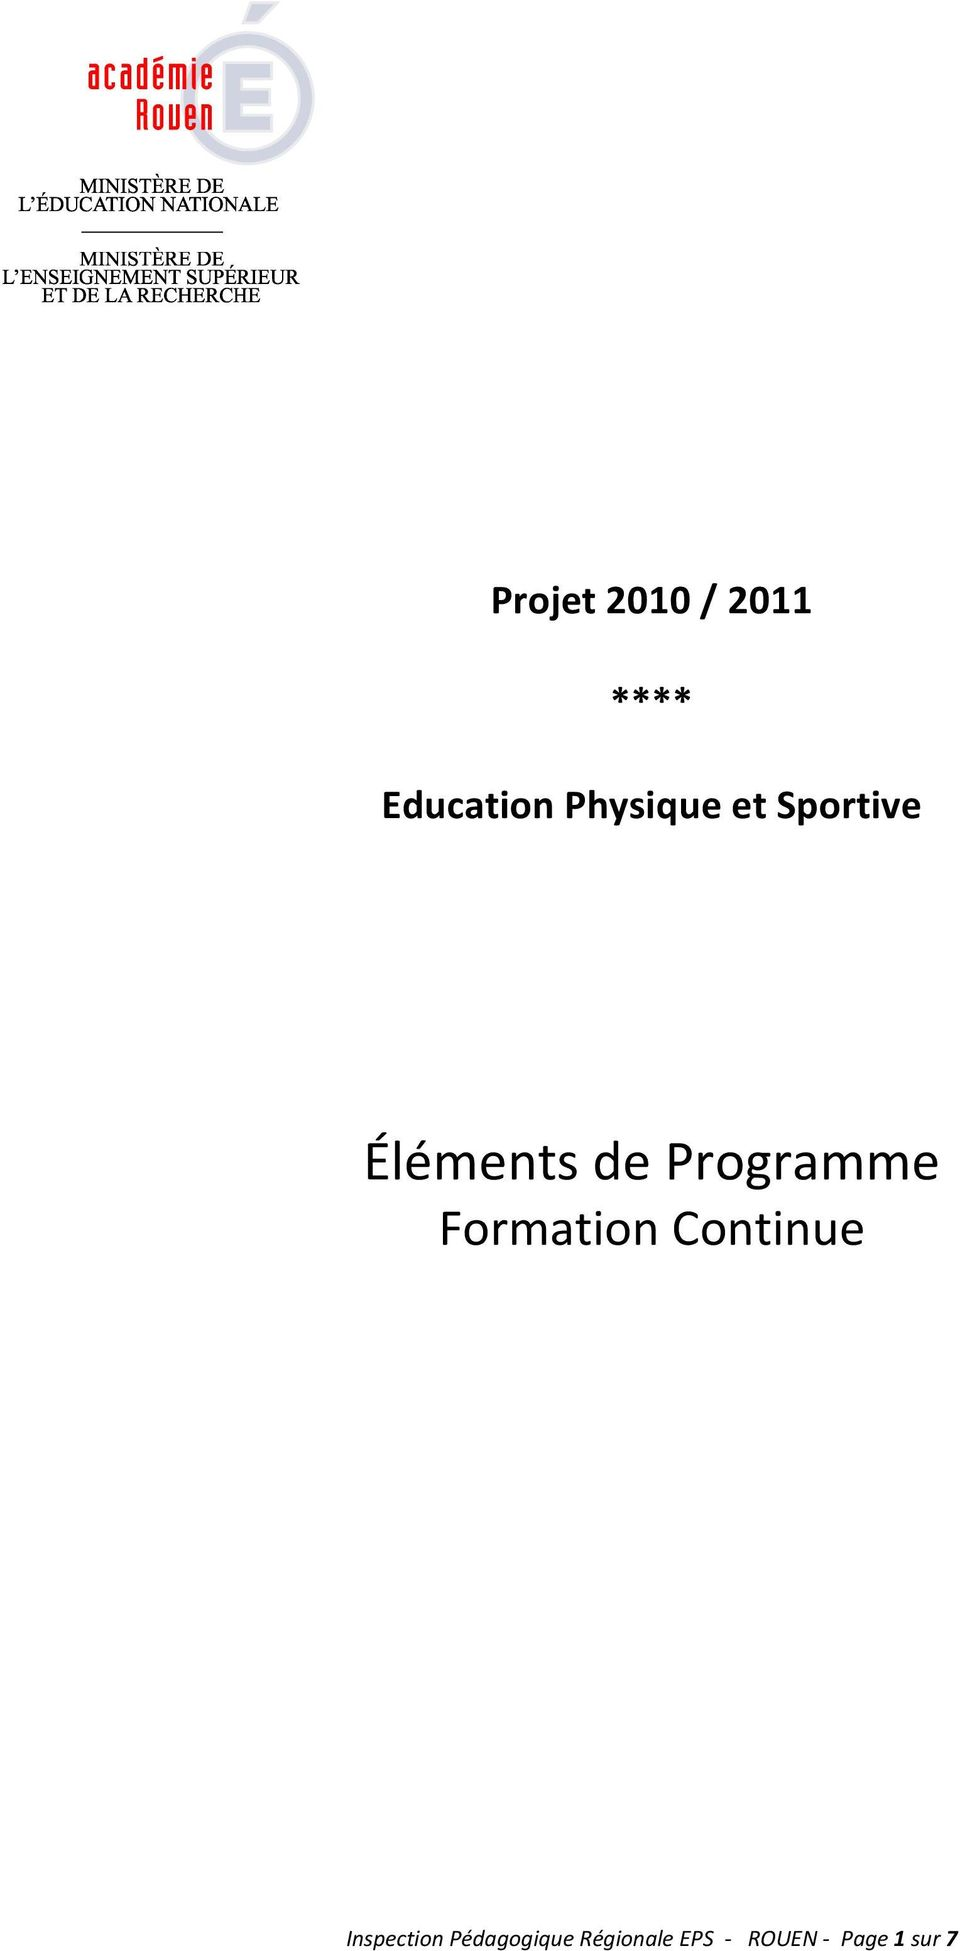 Programme Formation Continue